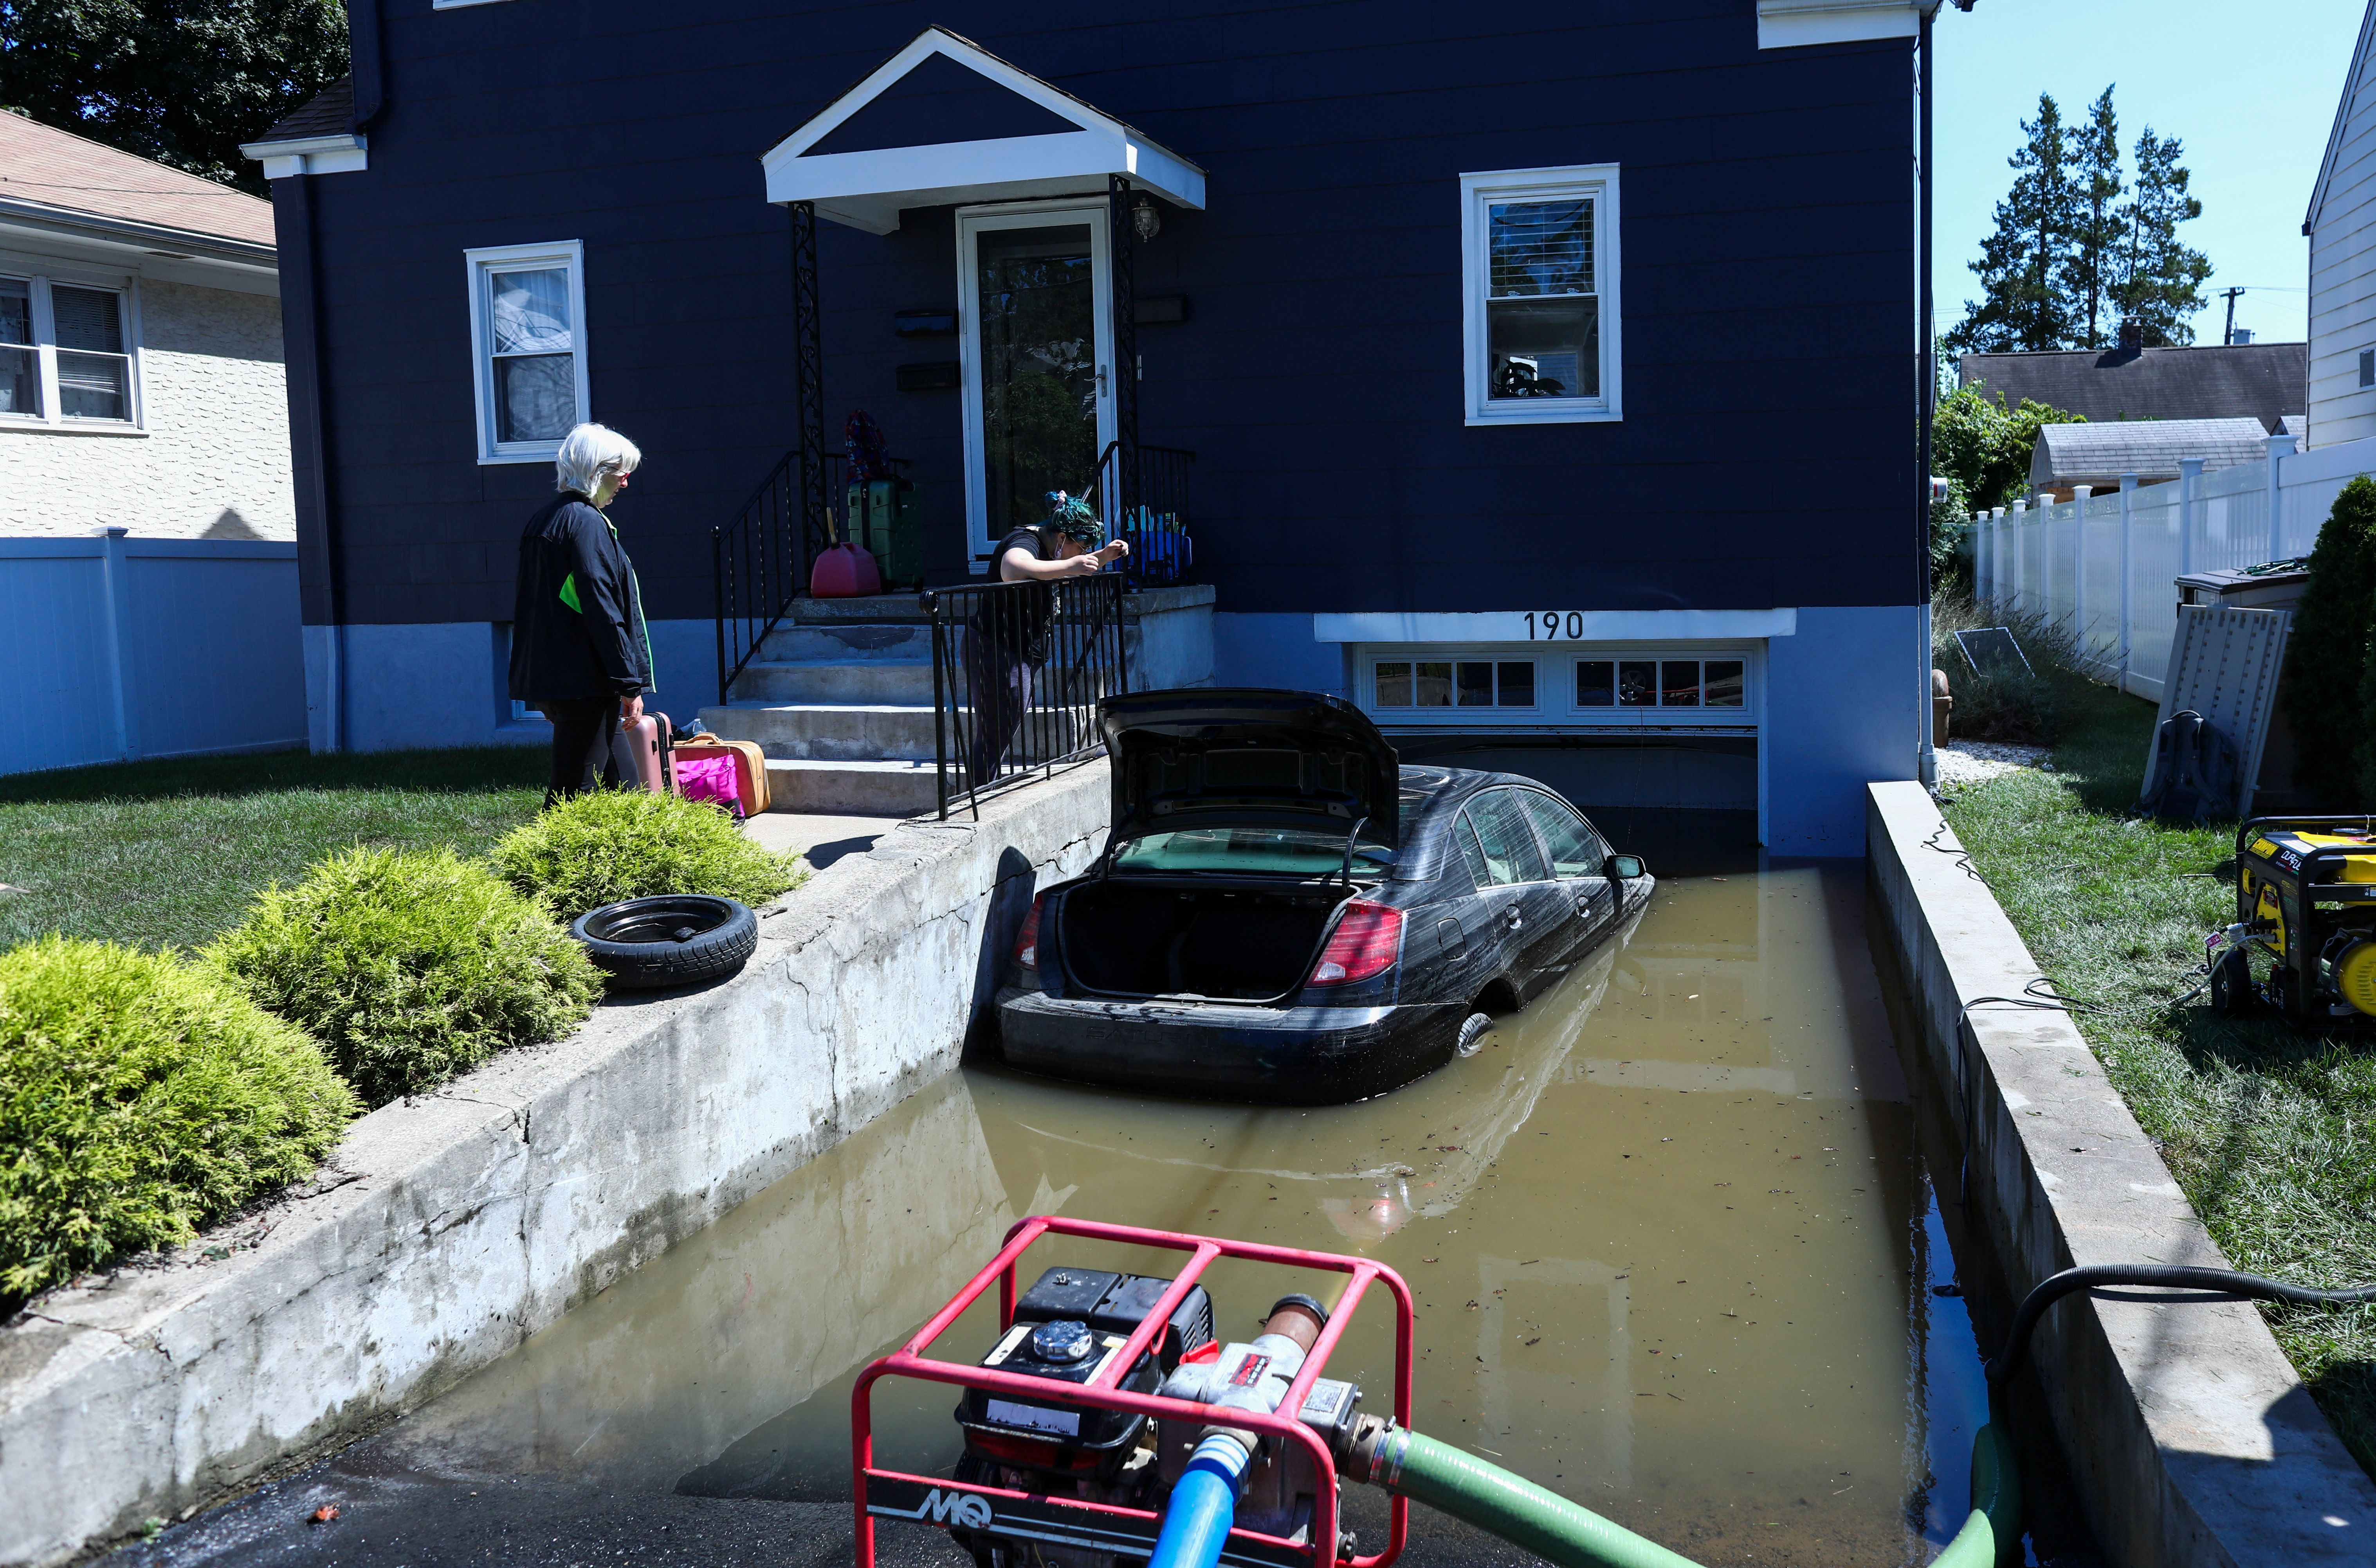 A car sits on a flooded garage of a house following a night of heavy wind and rain from the remnants of Hurricane Ida in Mamaroneck, New York. (Photo by KENA BETANCUR/AFP via Getty Images)